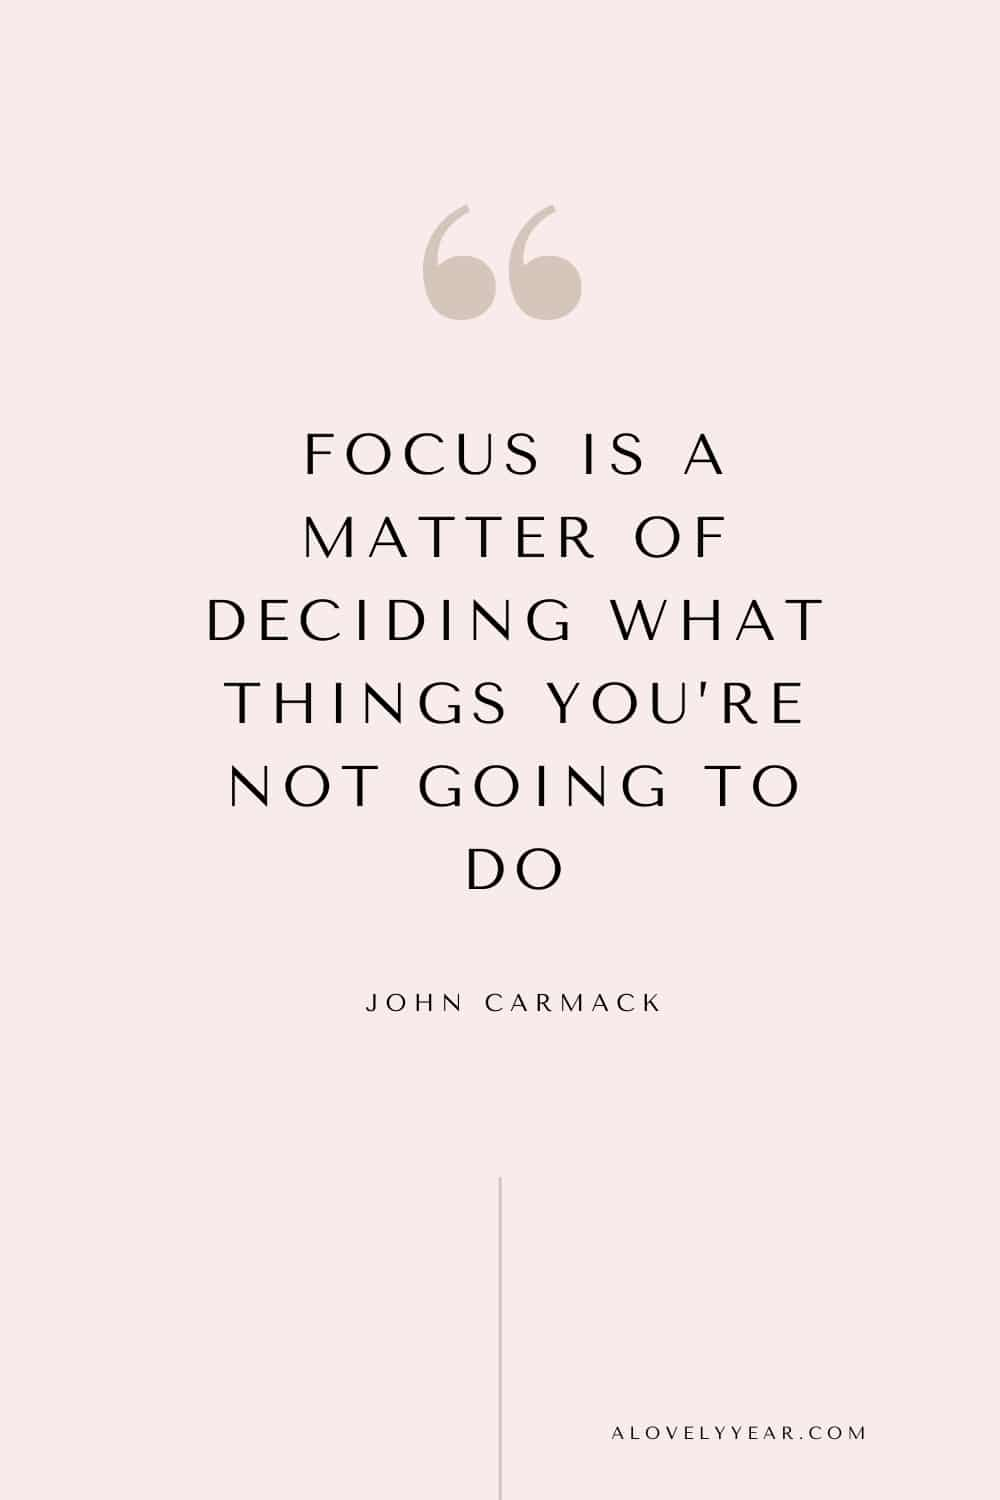 quote - Focus is a matter of deciding what things you're not going to do. — John Carmack